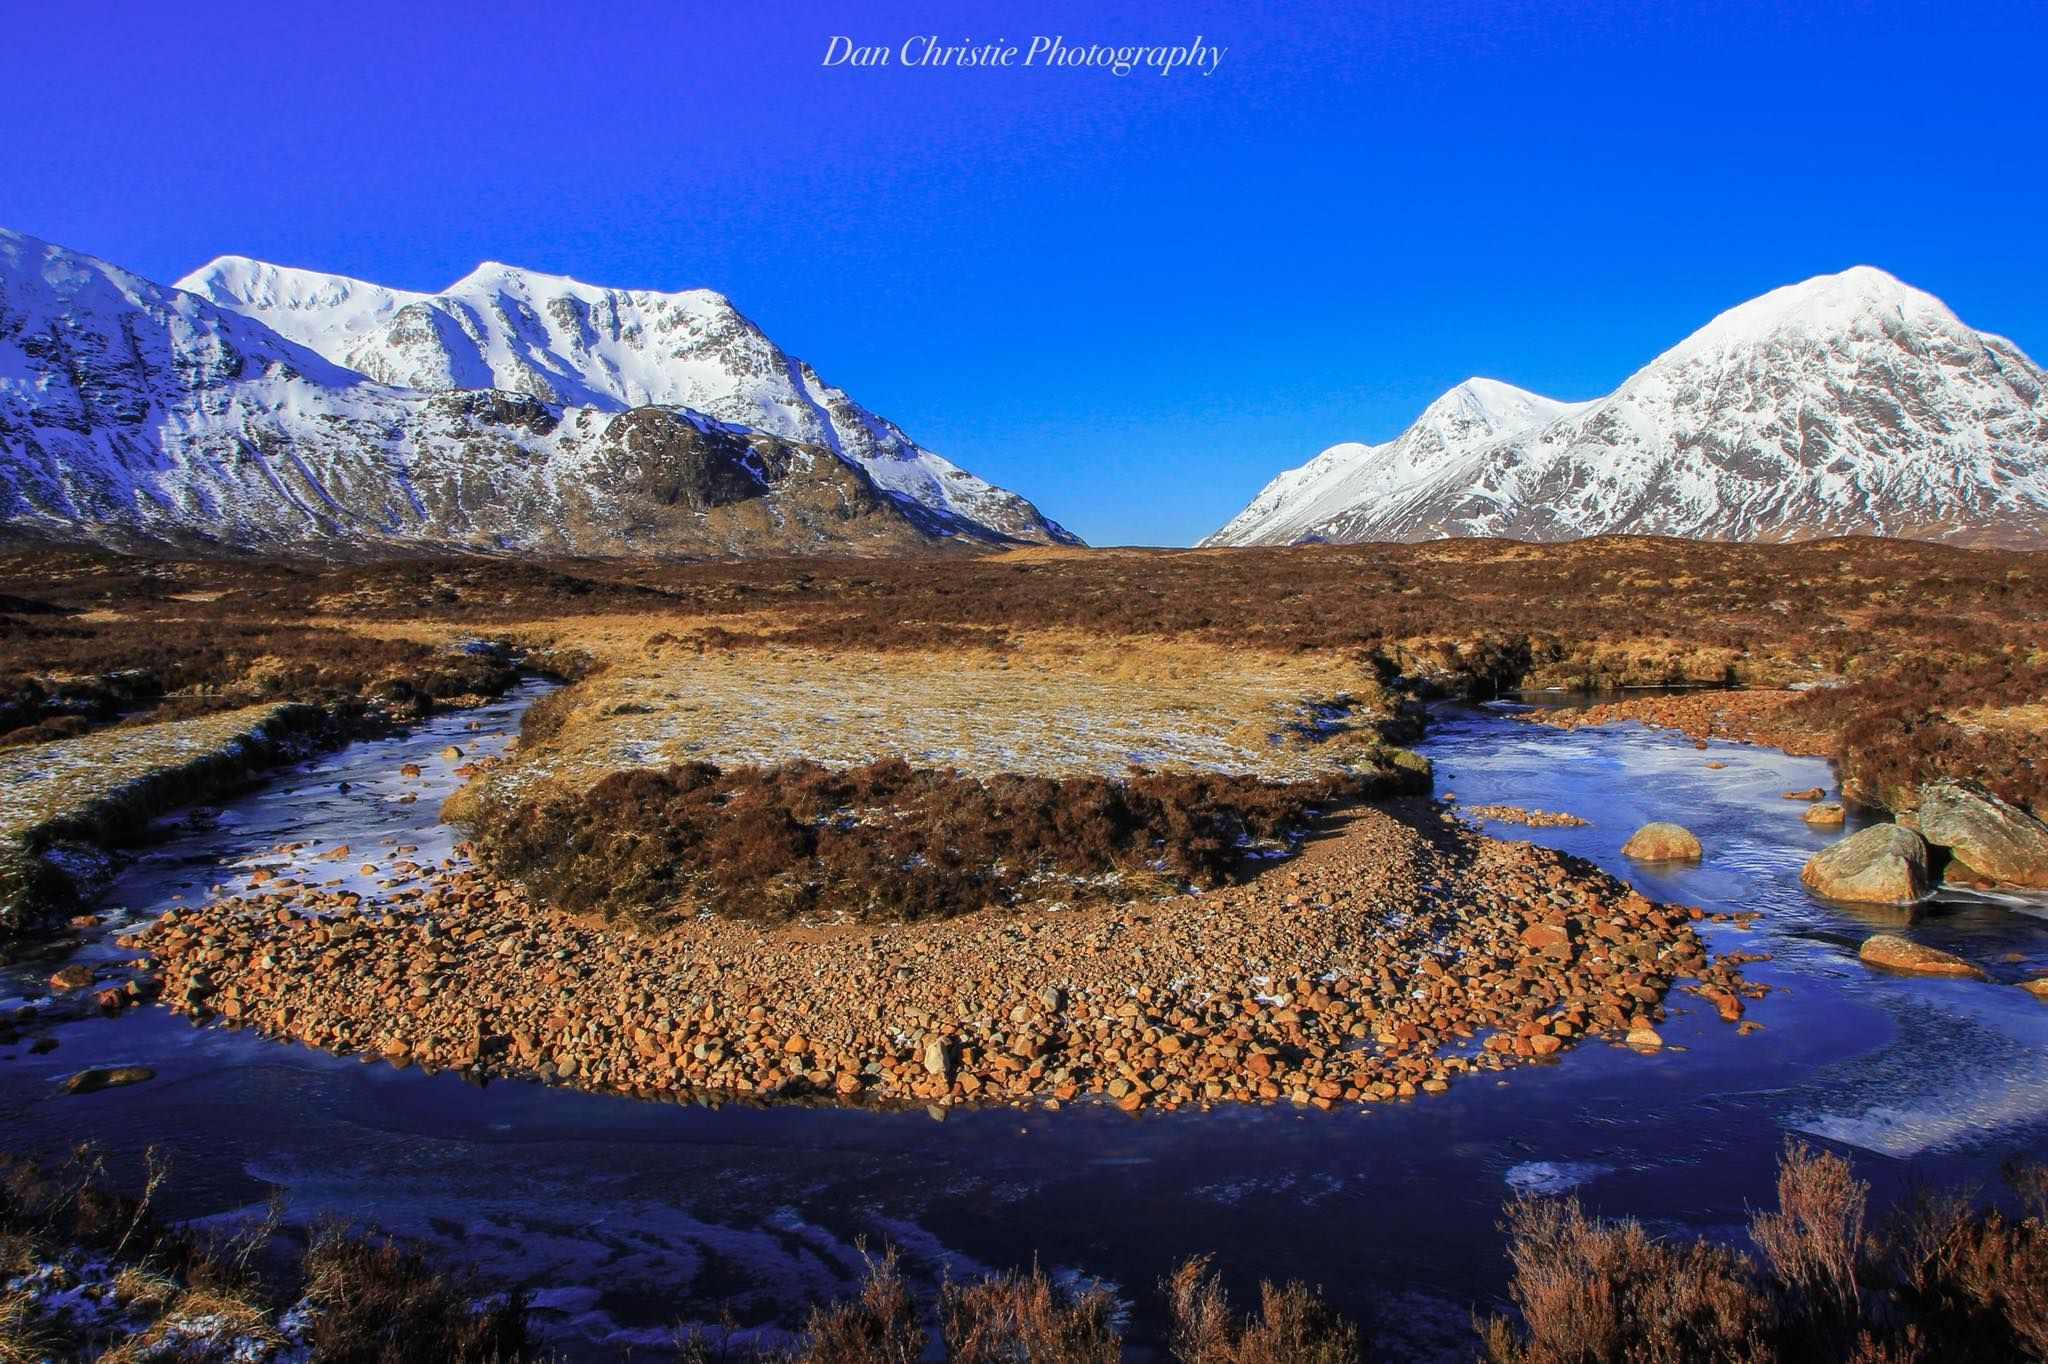 Buchaille Etive Mor In Rannoch Moor The Way To Glencoe By Dan Christie Photography